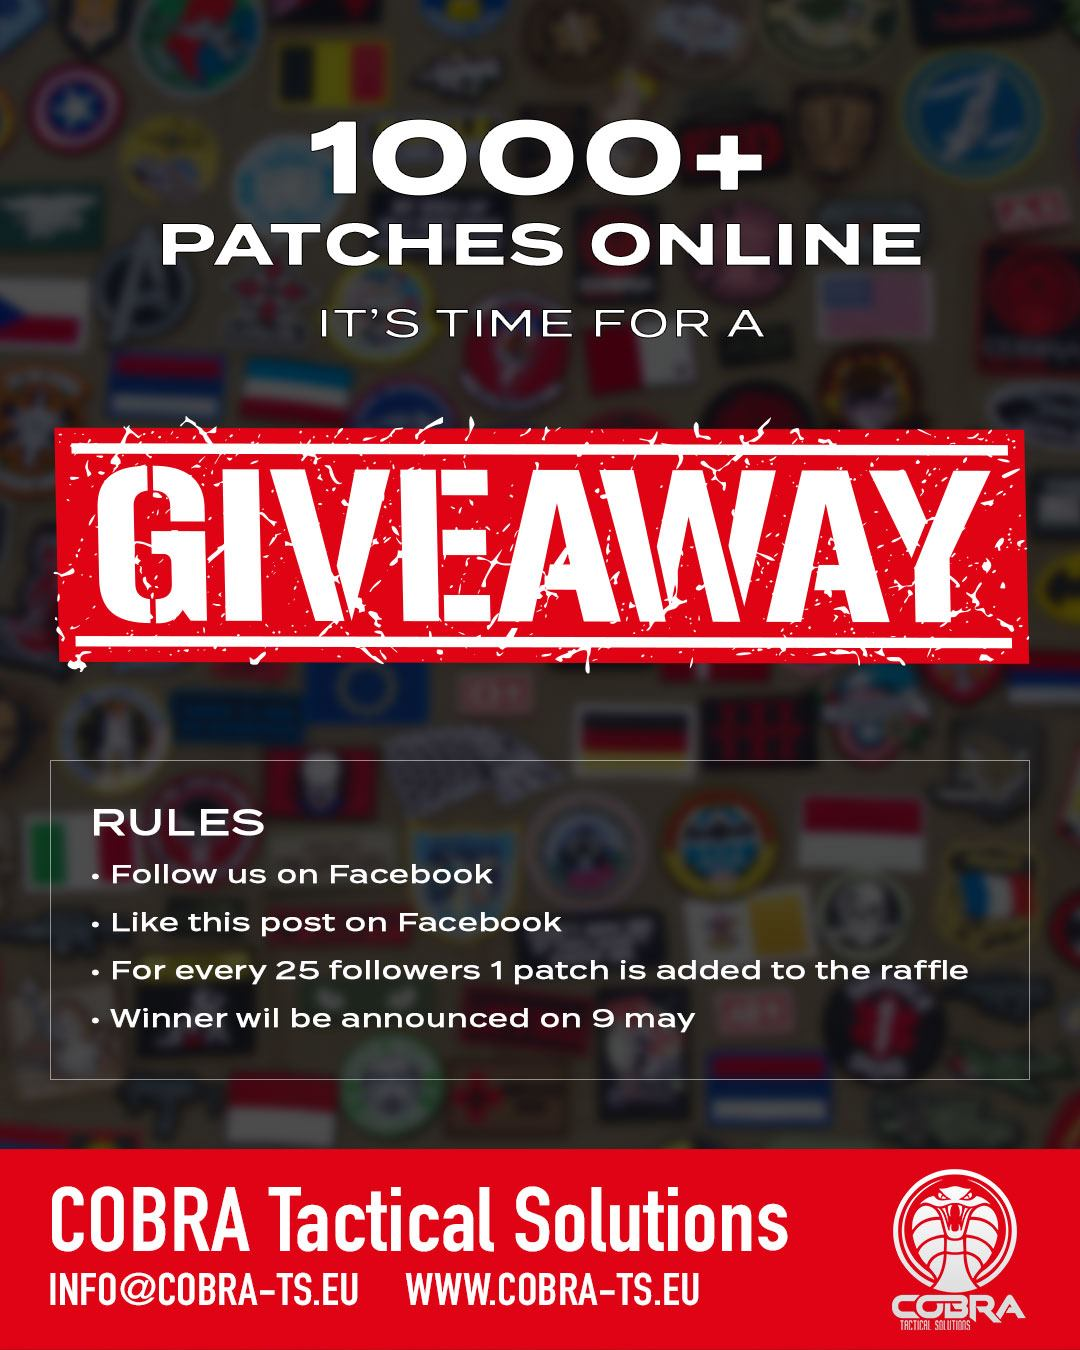 1000+ Patches online, it's time for a giveaway!! Giveaway-v1